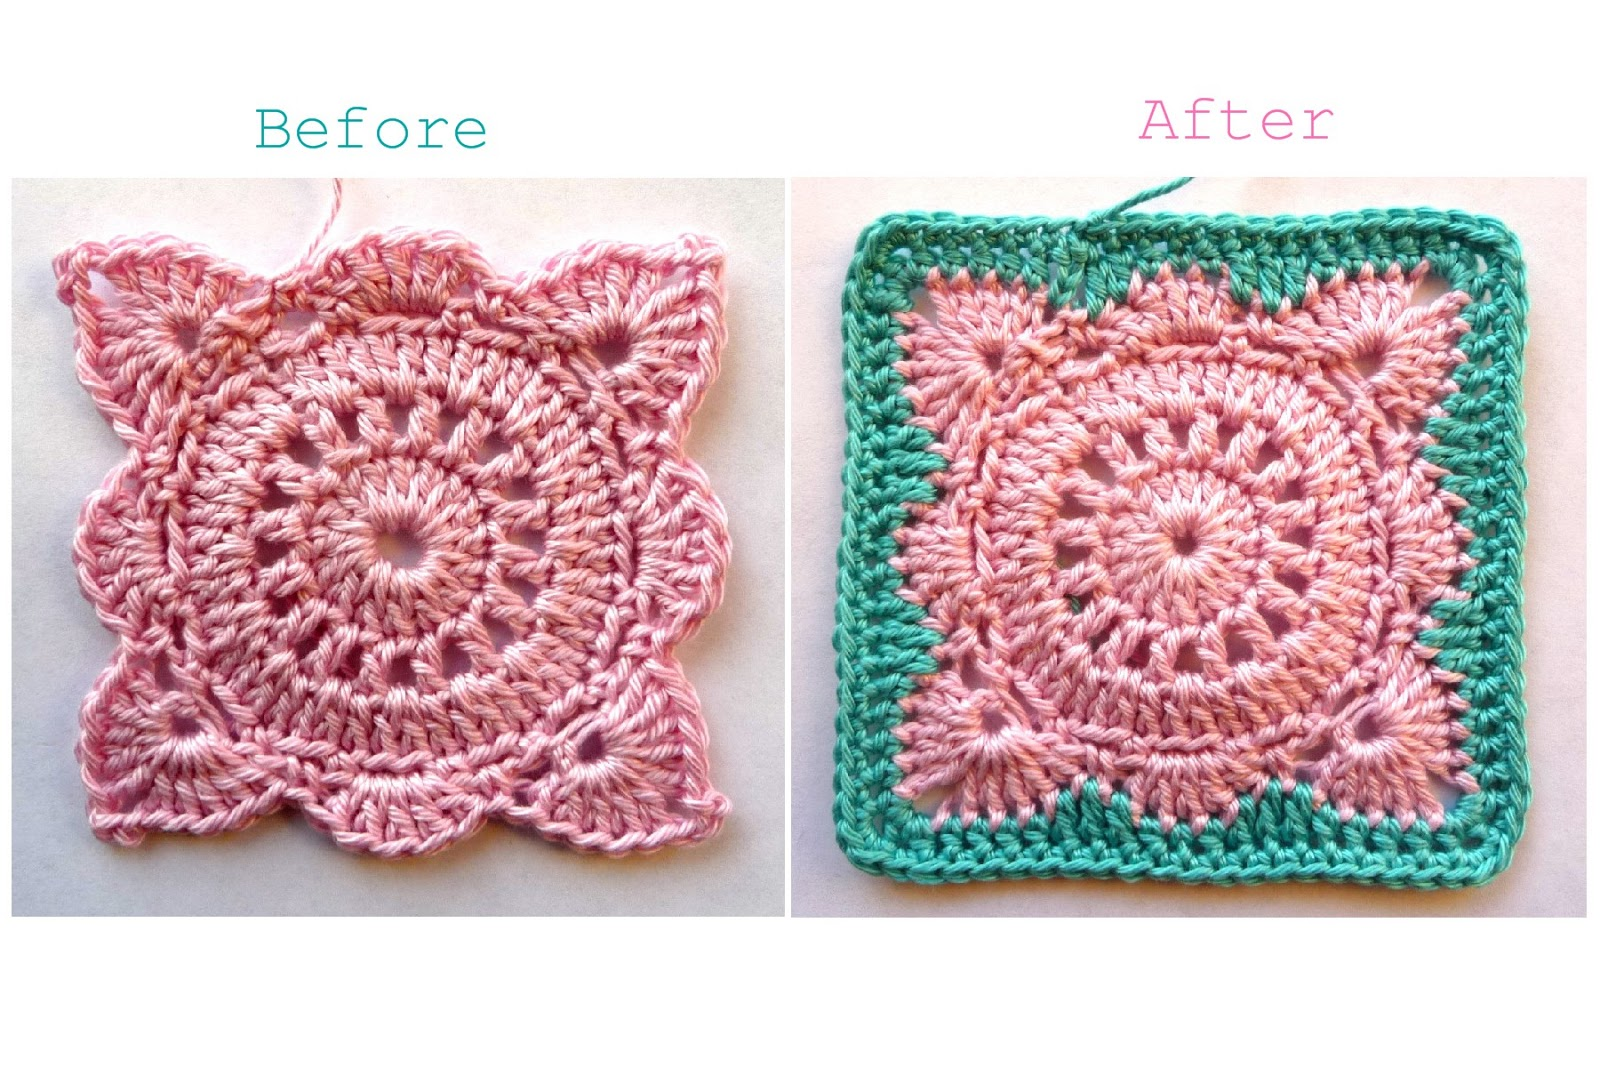 Solid 'Willow' Crochet Block How-To